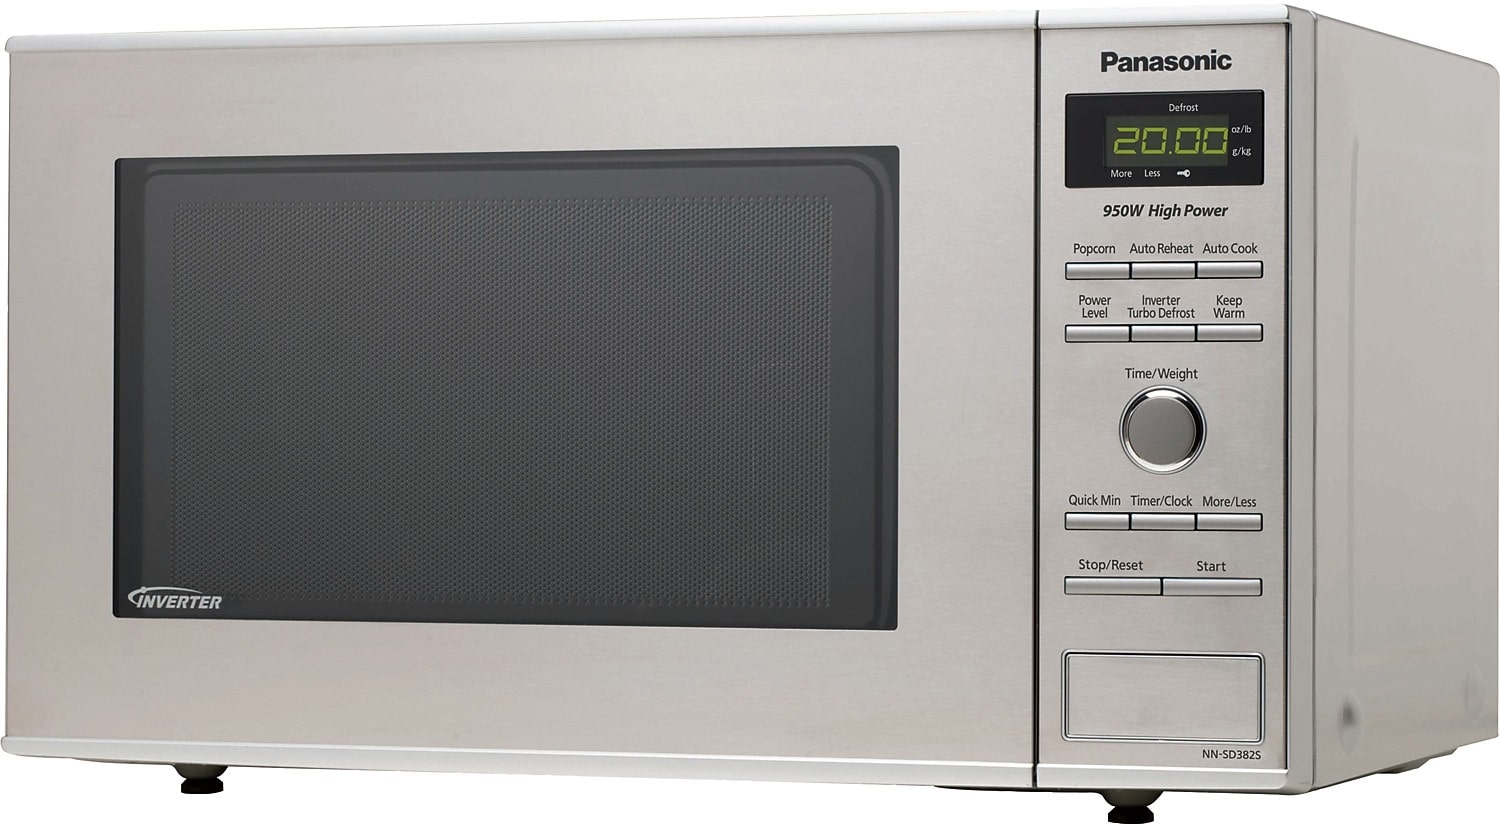 Countertop Microwave Oven Sale : Panasonic 0.8 Cu. Ft. Countertop Microwave Oven ? Stainless Steel ...